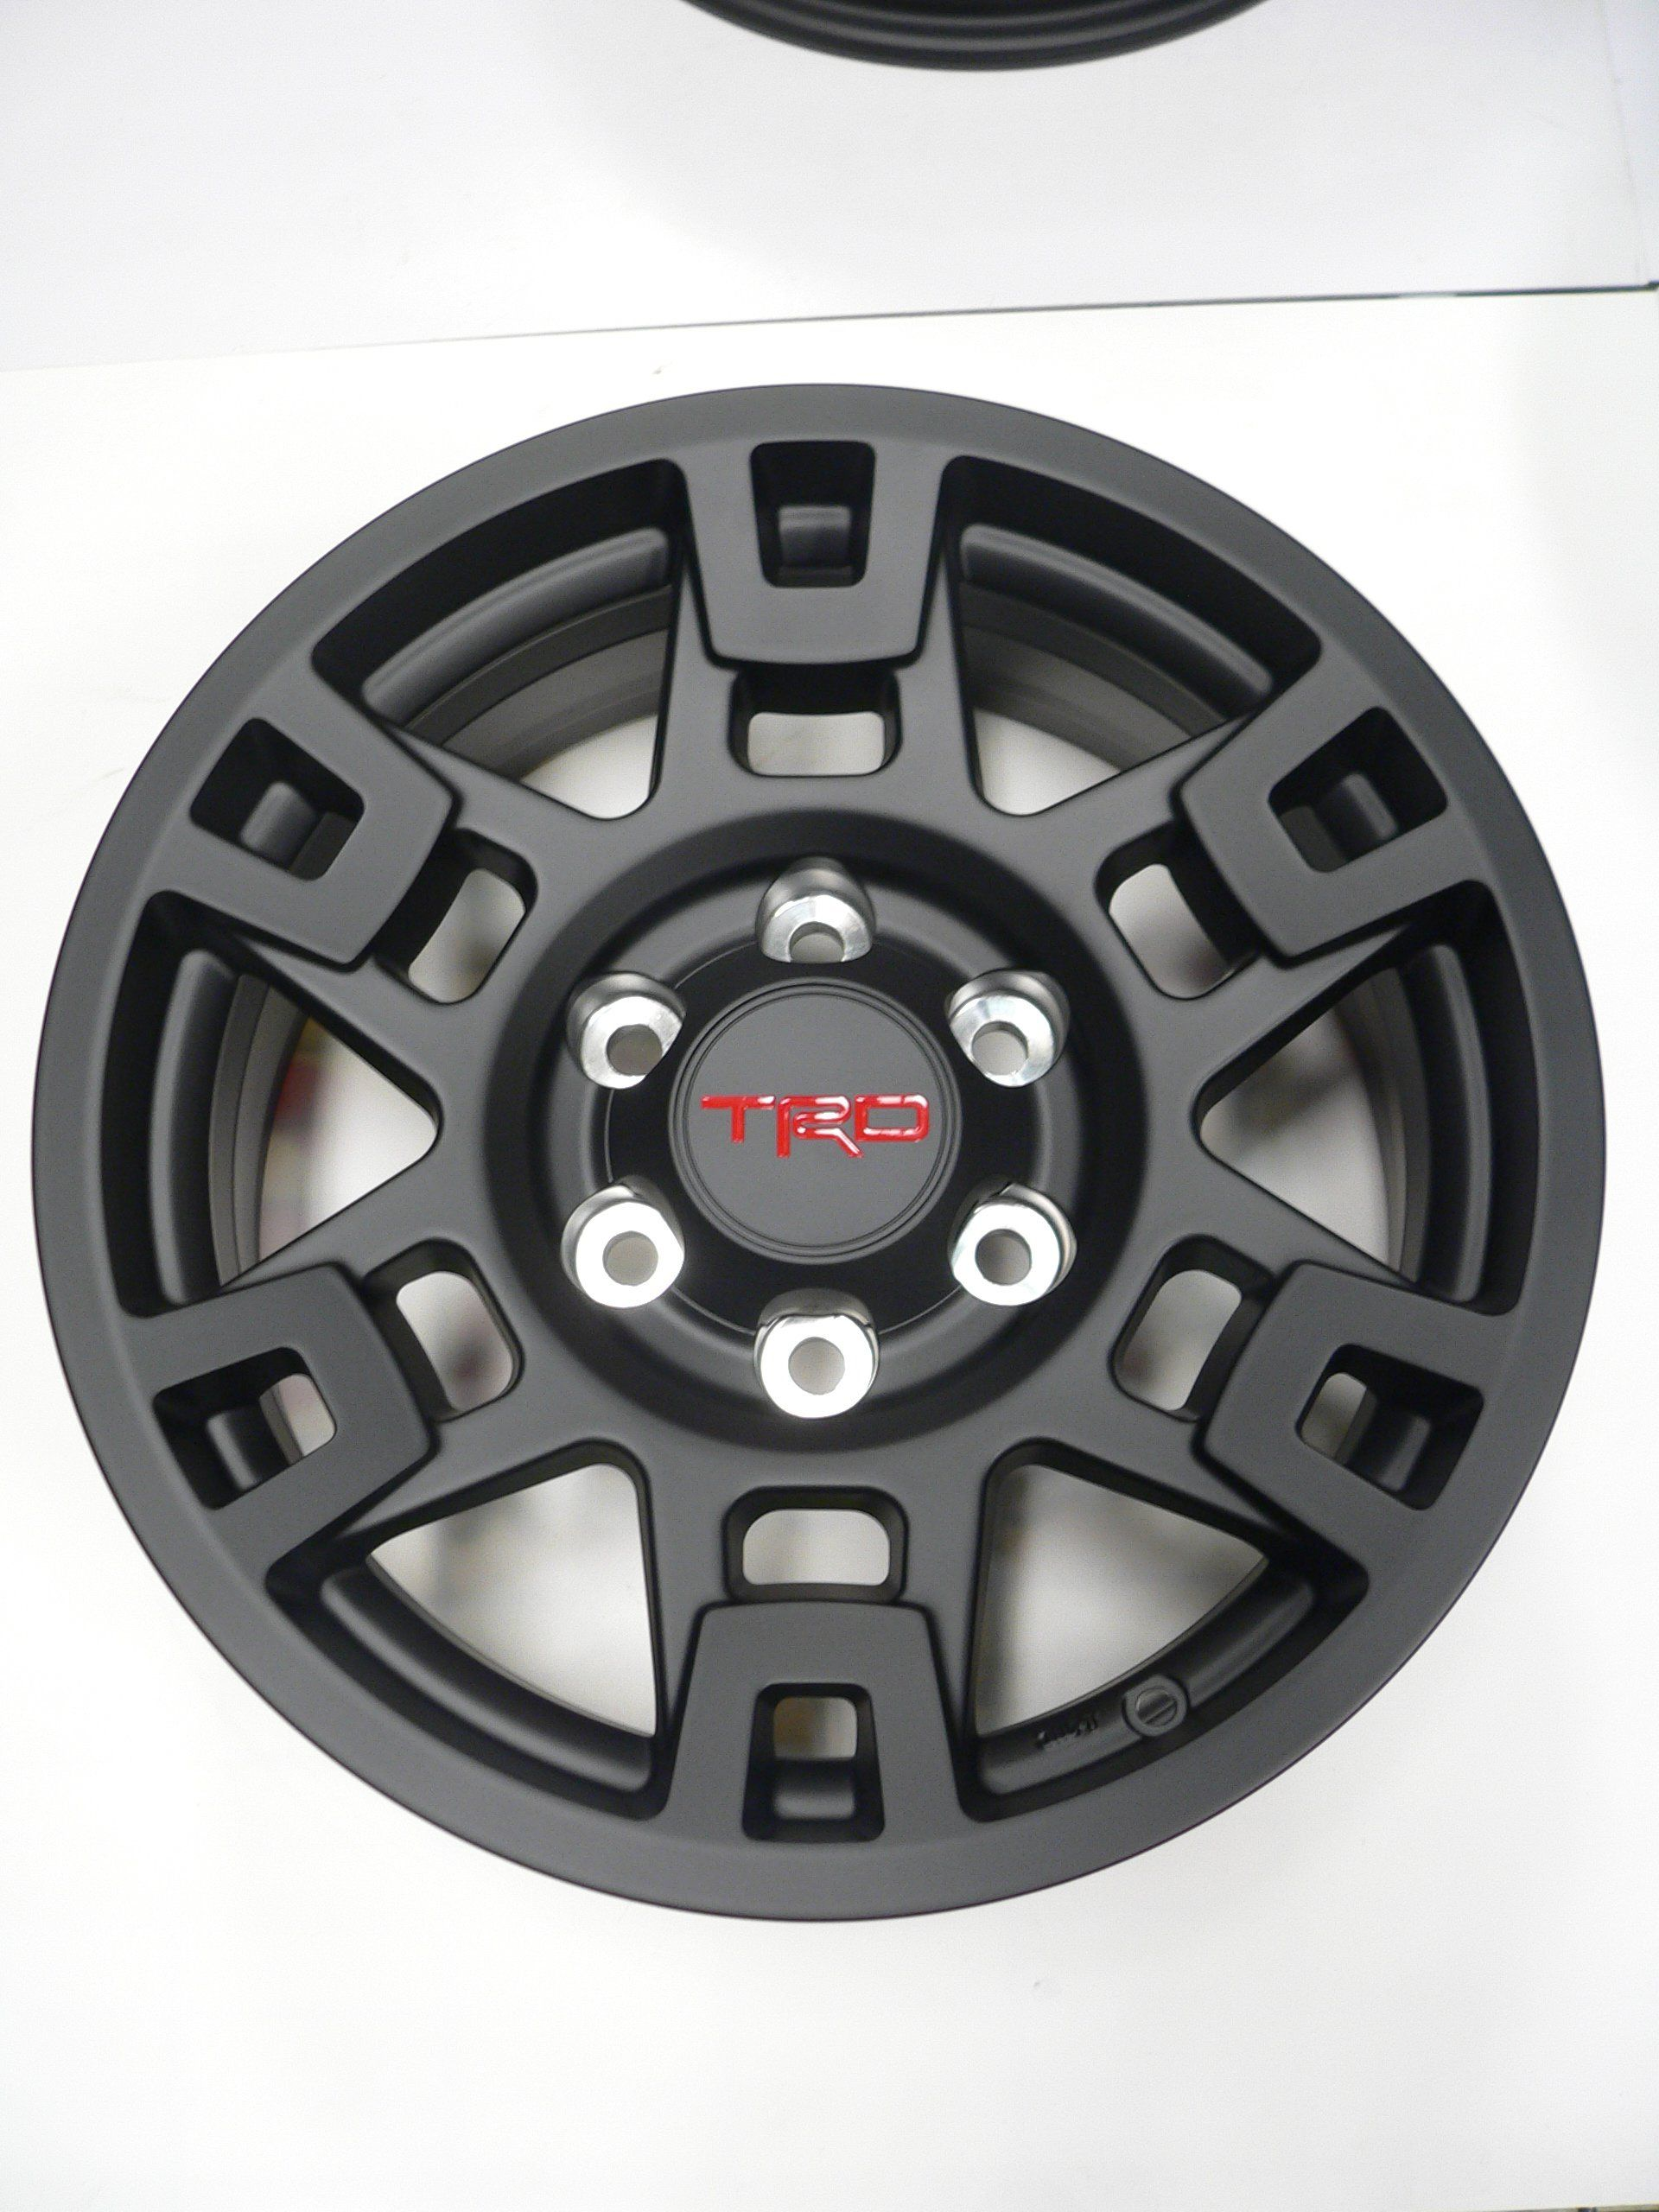 Amazon.com: Toyota 4 Runner Aluminum Wheels: Automotive